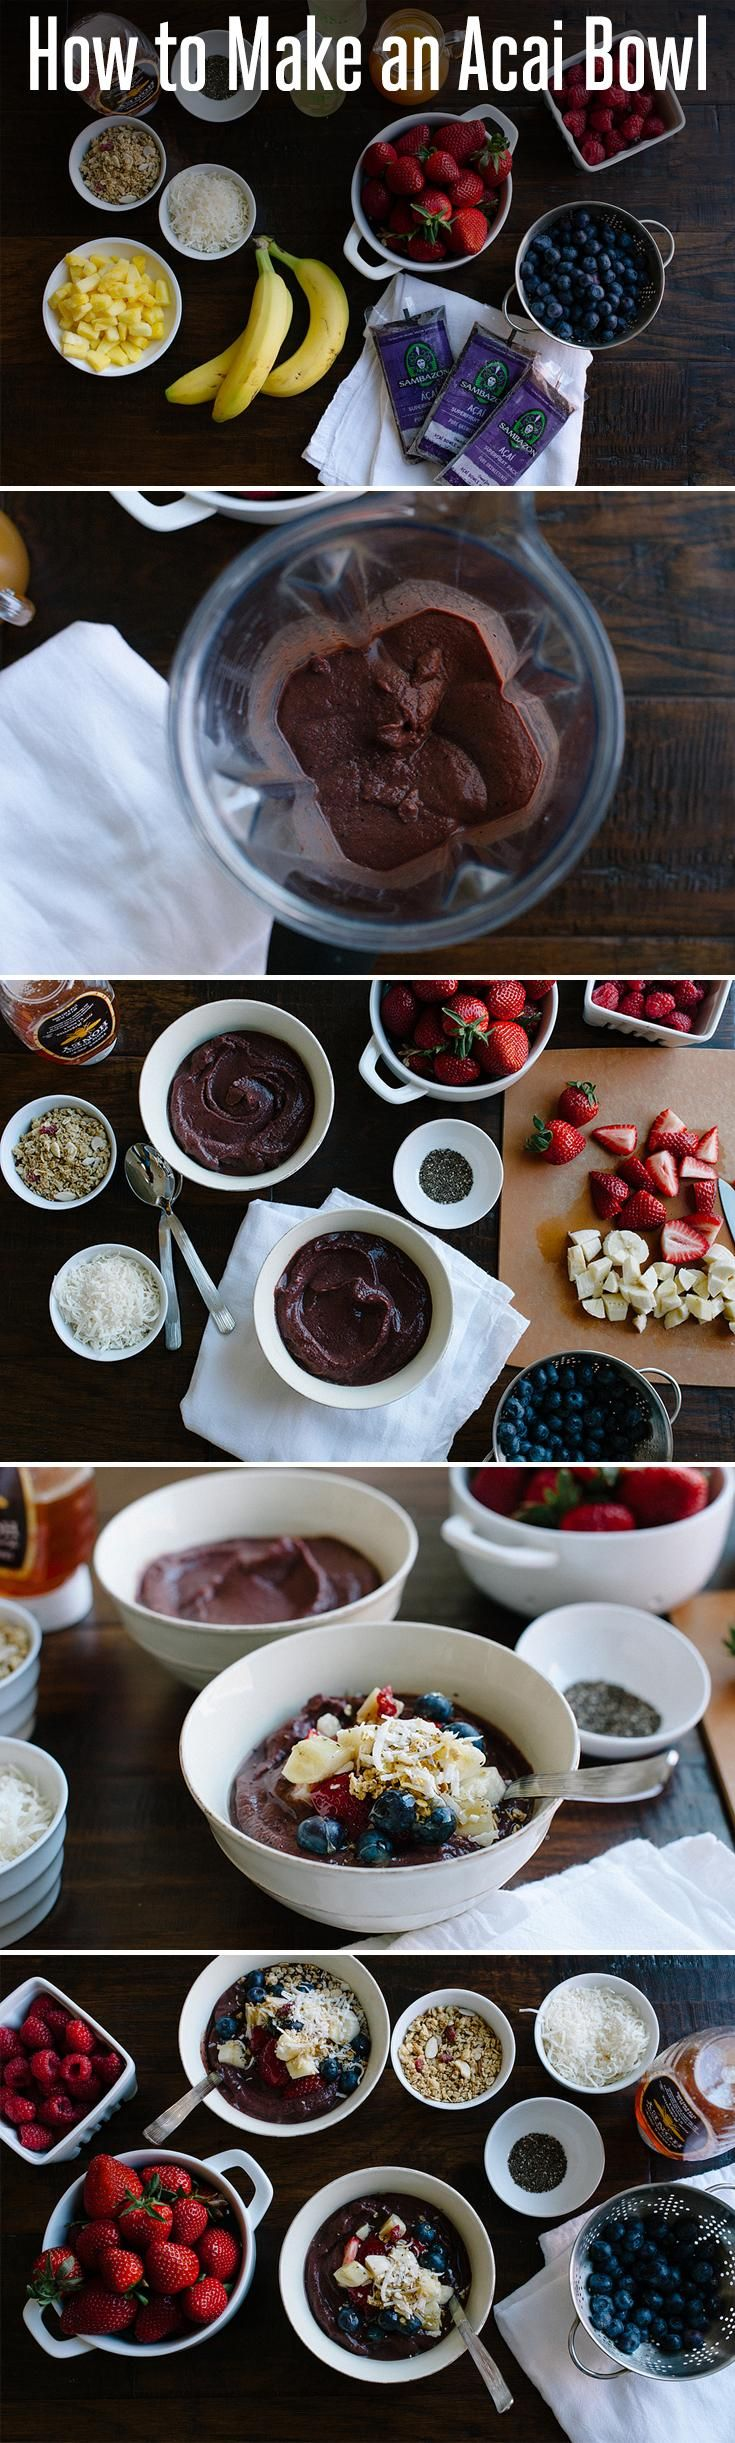 How to Make an Açaí Bowl